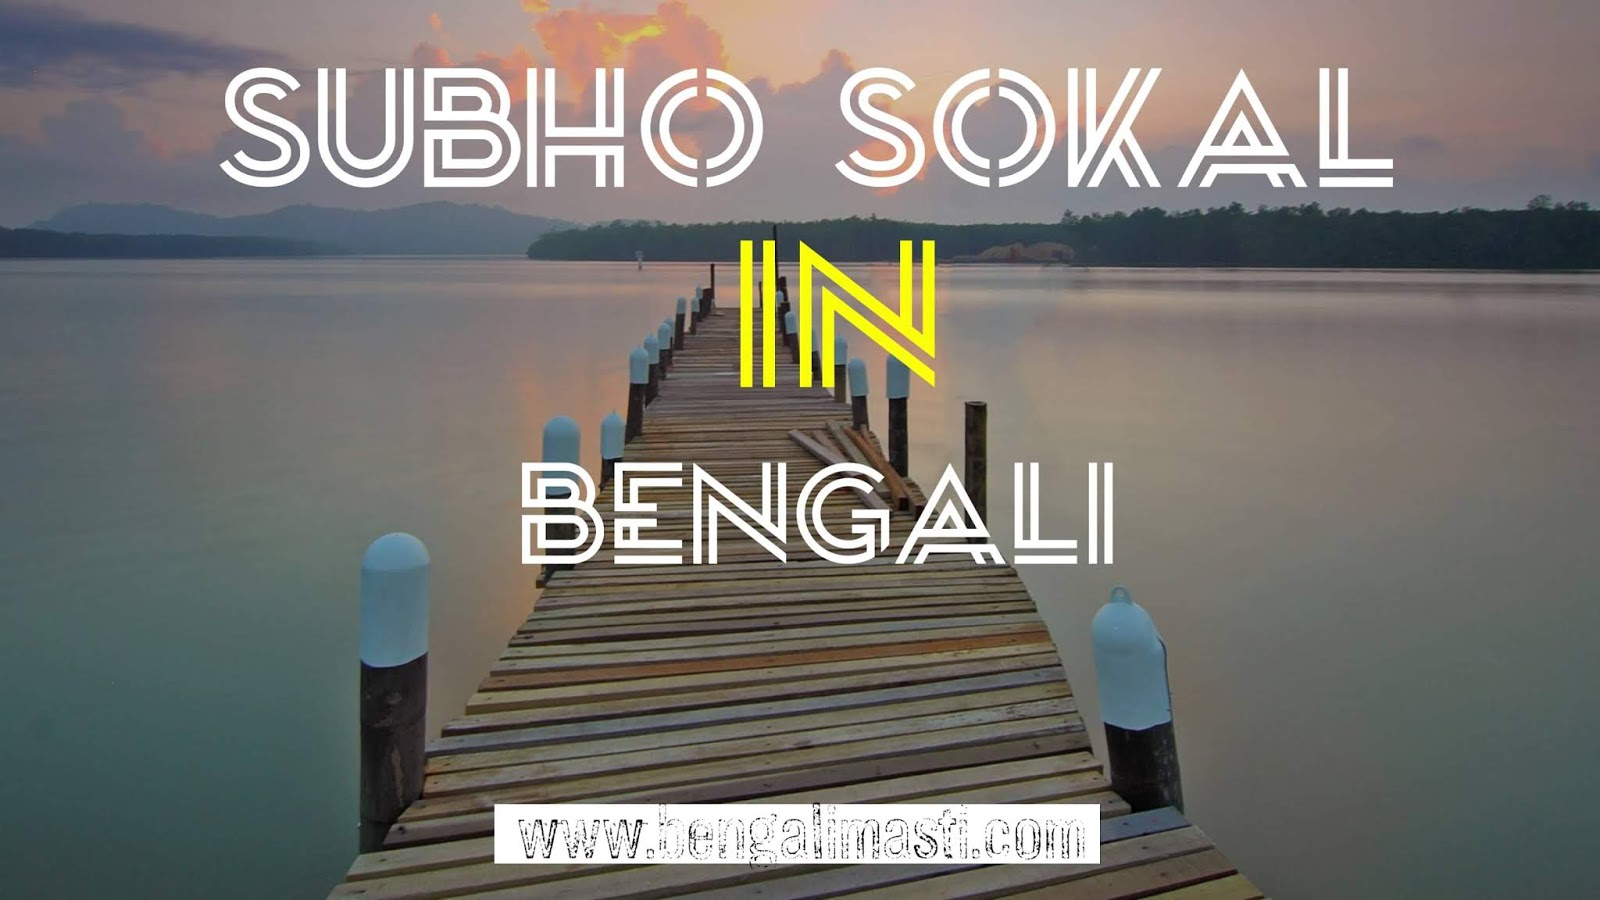 Suprovat Sms in Bengali